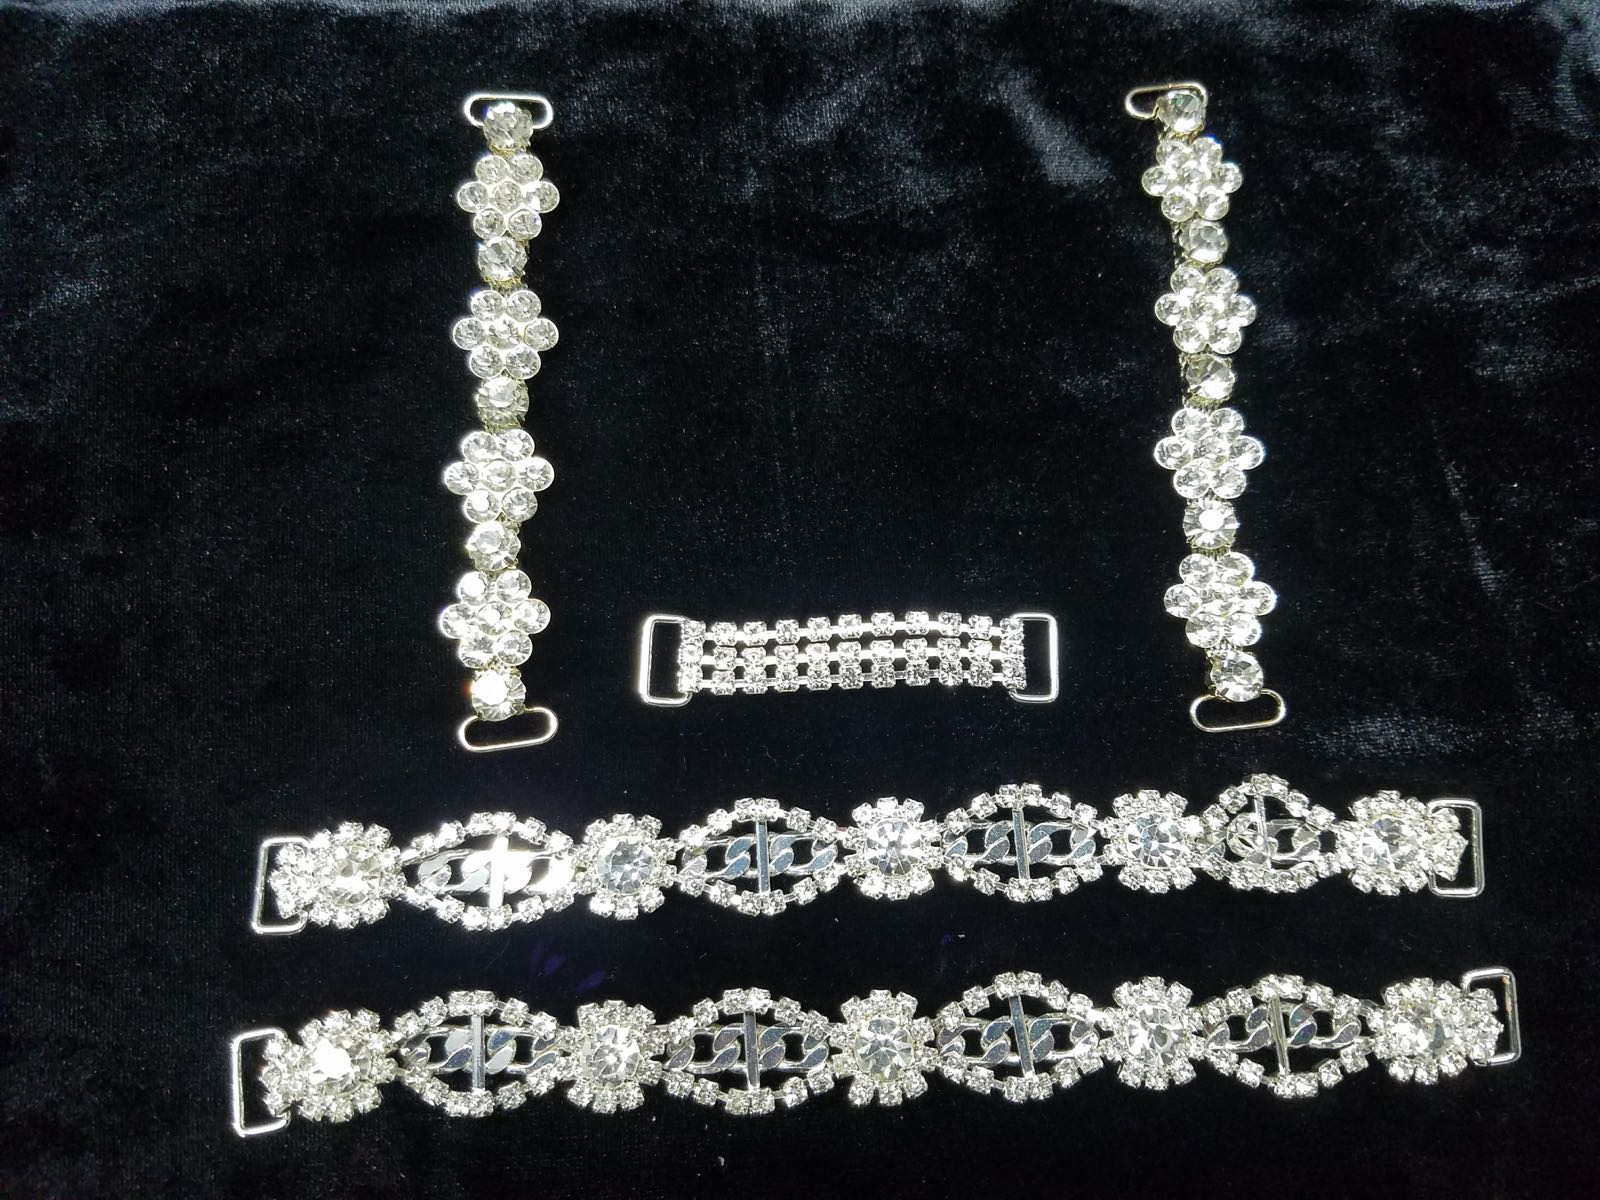 Set H, Silver with clear crystals, $65.00